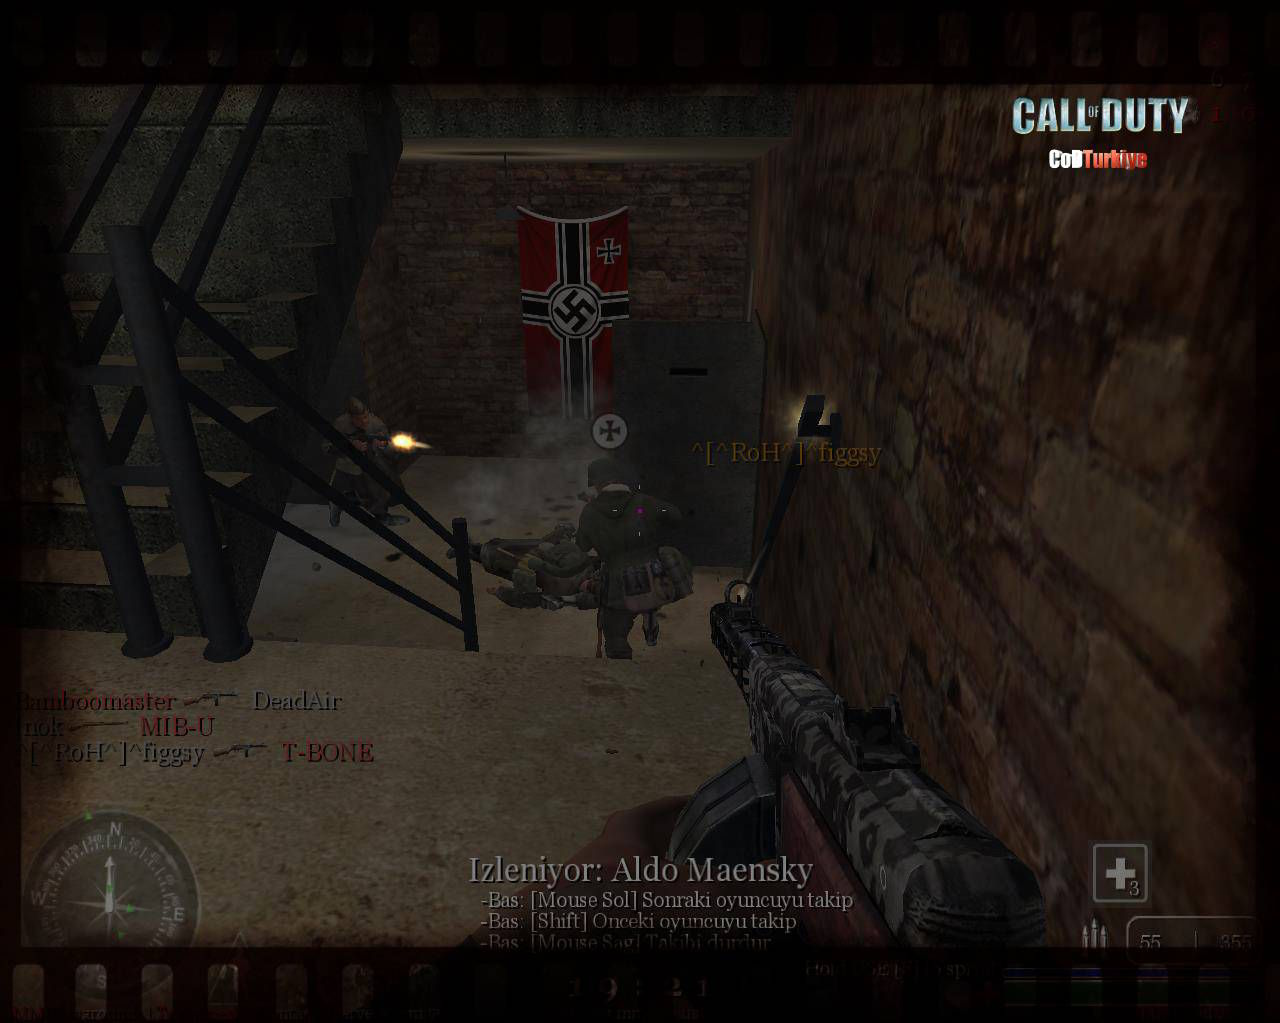 Call of Duty Multiplayer Gameplay